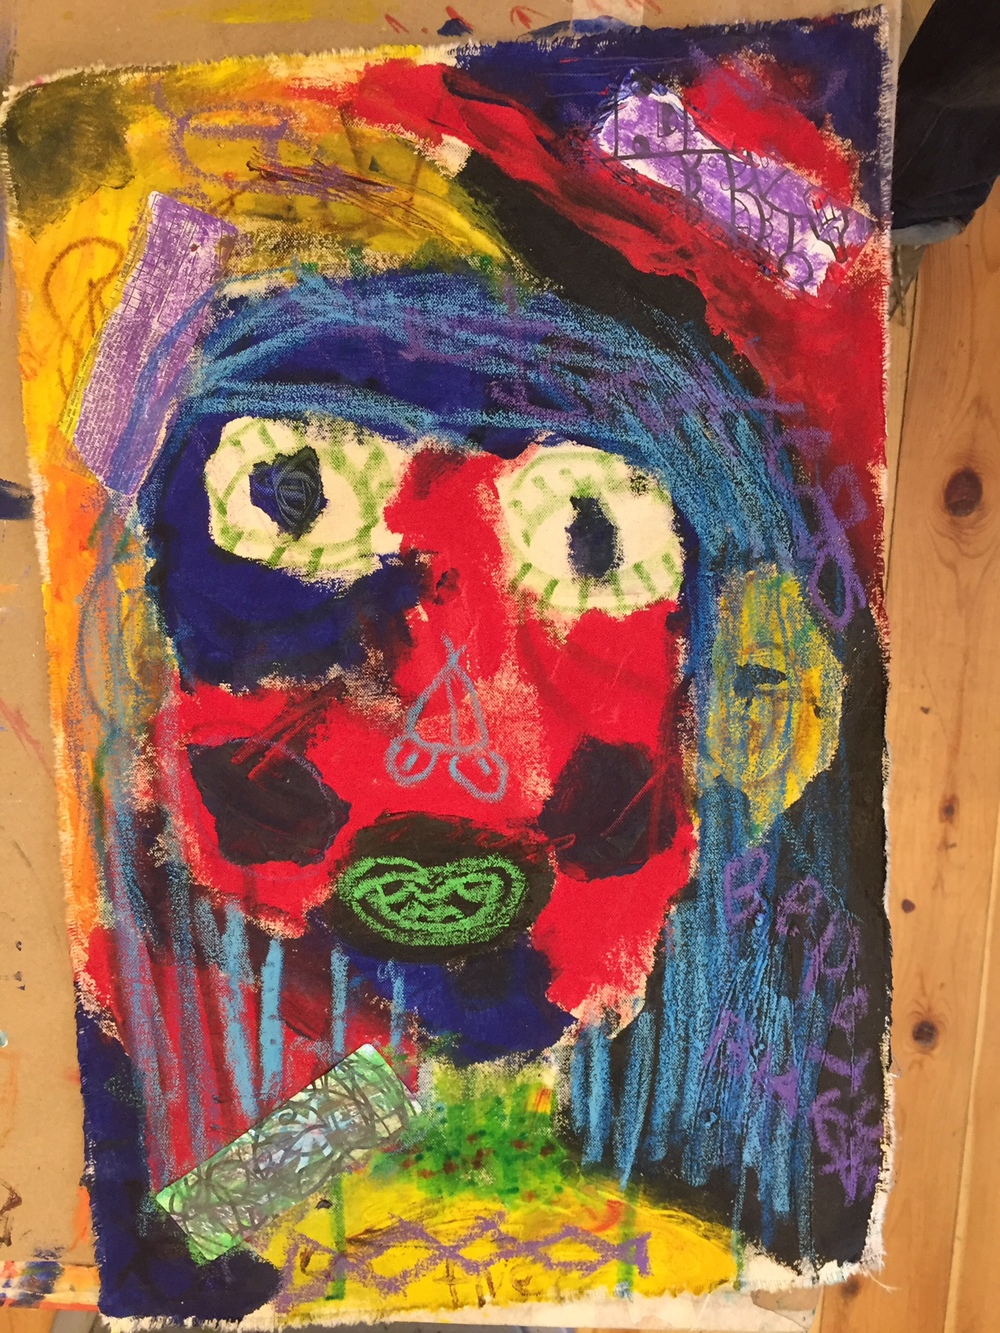 Jean-Michel Basquiat inspired portrait on unstretched canvas. Media include acrylic paint, oil pastel and paper collage.